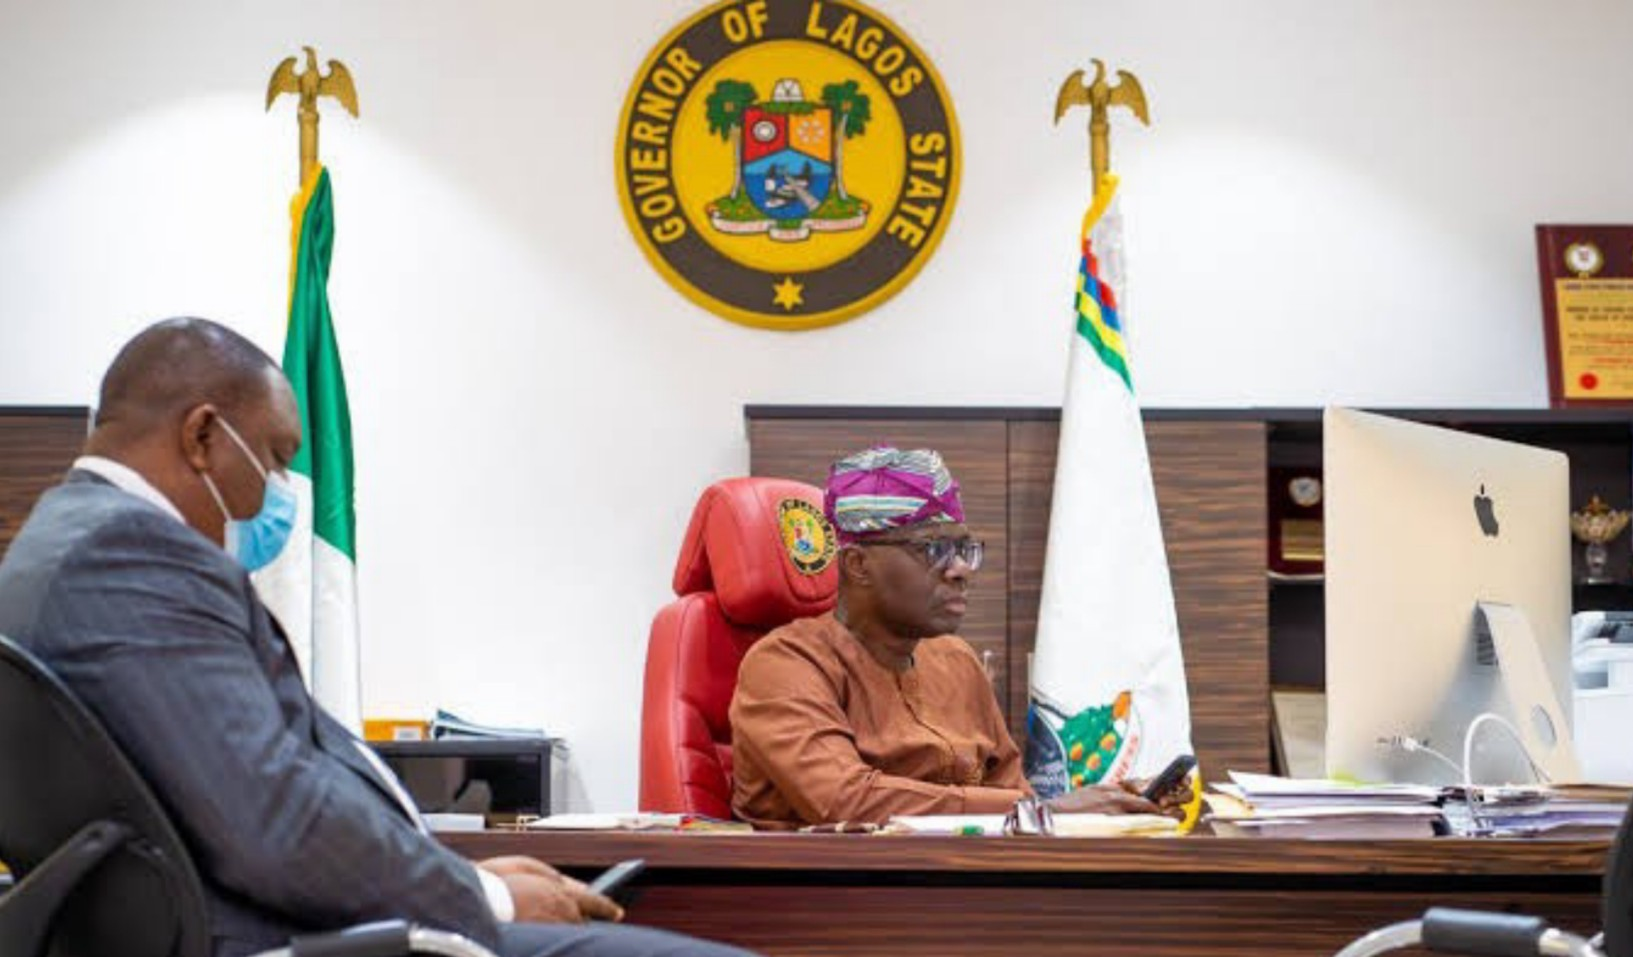 Lagos targets 4,000 unemployed youths for jobs